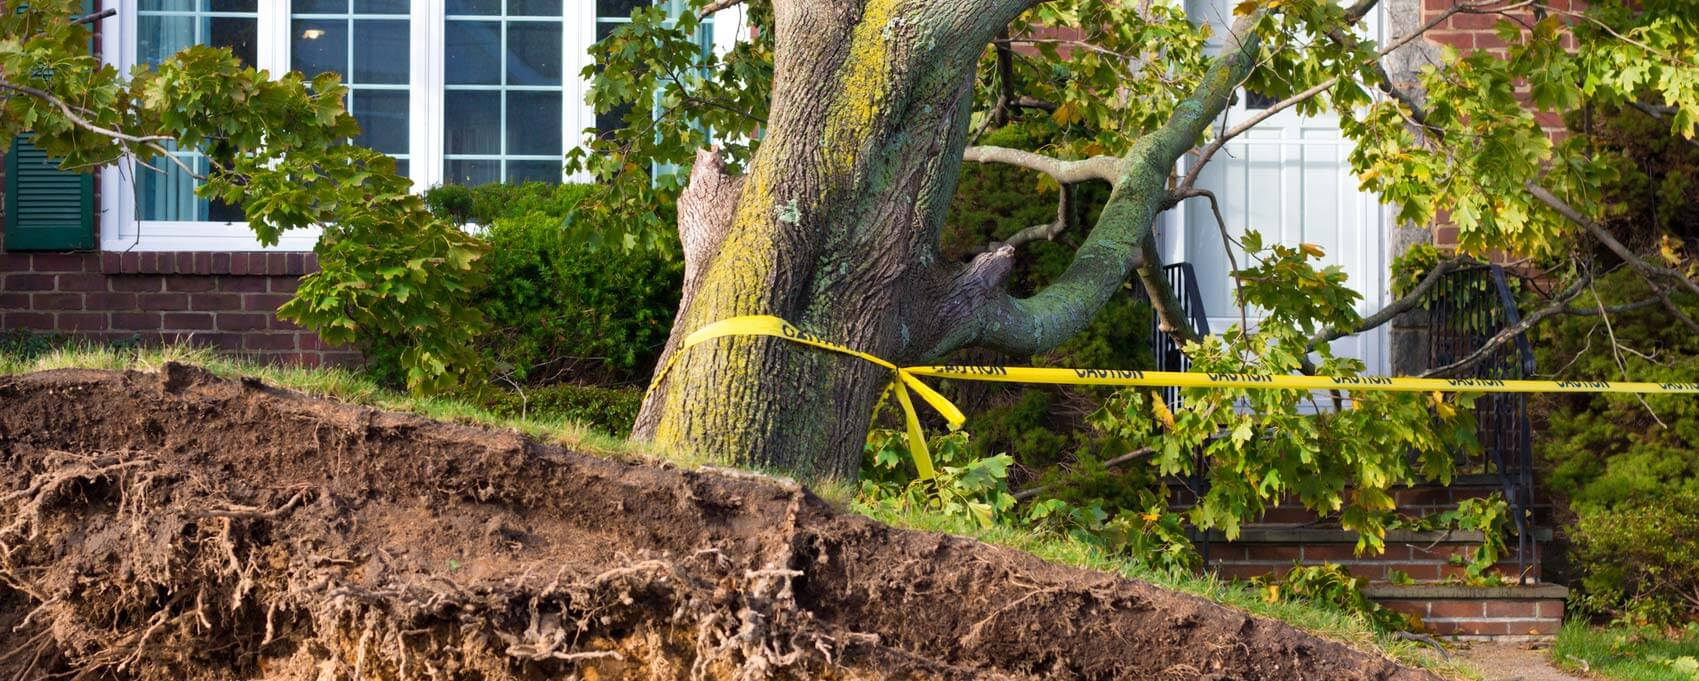 Emergency Tree Removal-Jupiter-Tequesta Tree Trimming and Tree Removal Services-We Offer Tree Trimming Services, Tree Removal, Tree Pruning, Tree Cutting, Residential and Commercial Tree Trimming Services, Storm Damage, Emergency Tree Removal, Land Clearing, Tree Companies, Tree Care Service, Stump Grinding, and we're the Best Tree Trimming Company Near You Guaranteed!